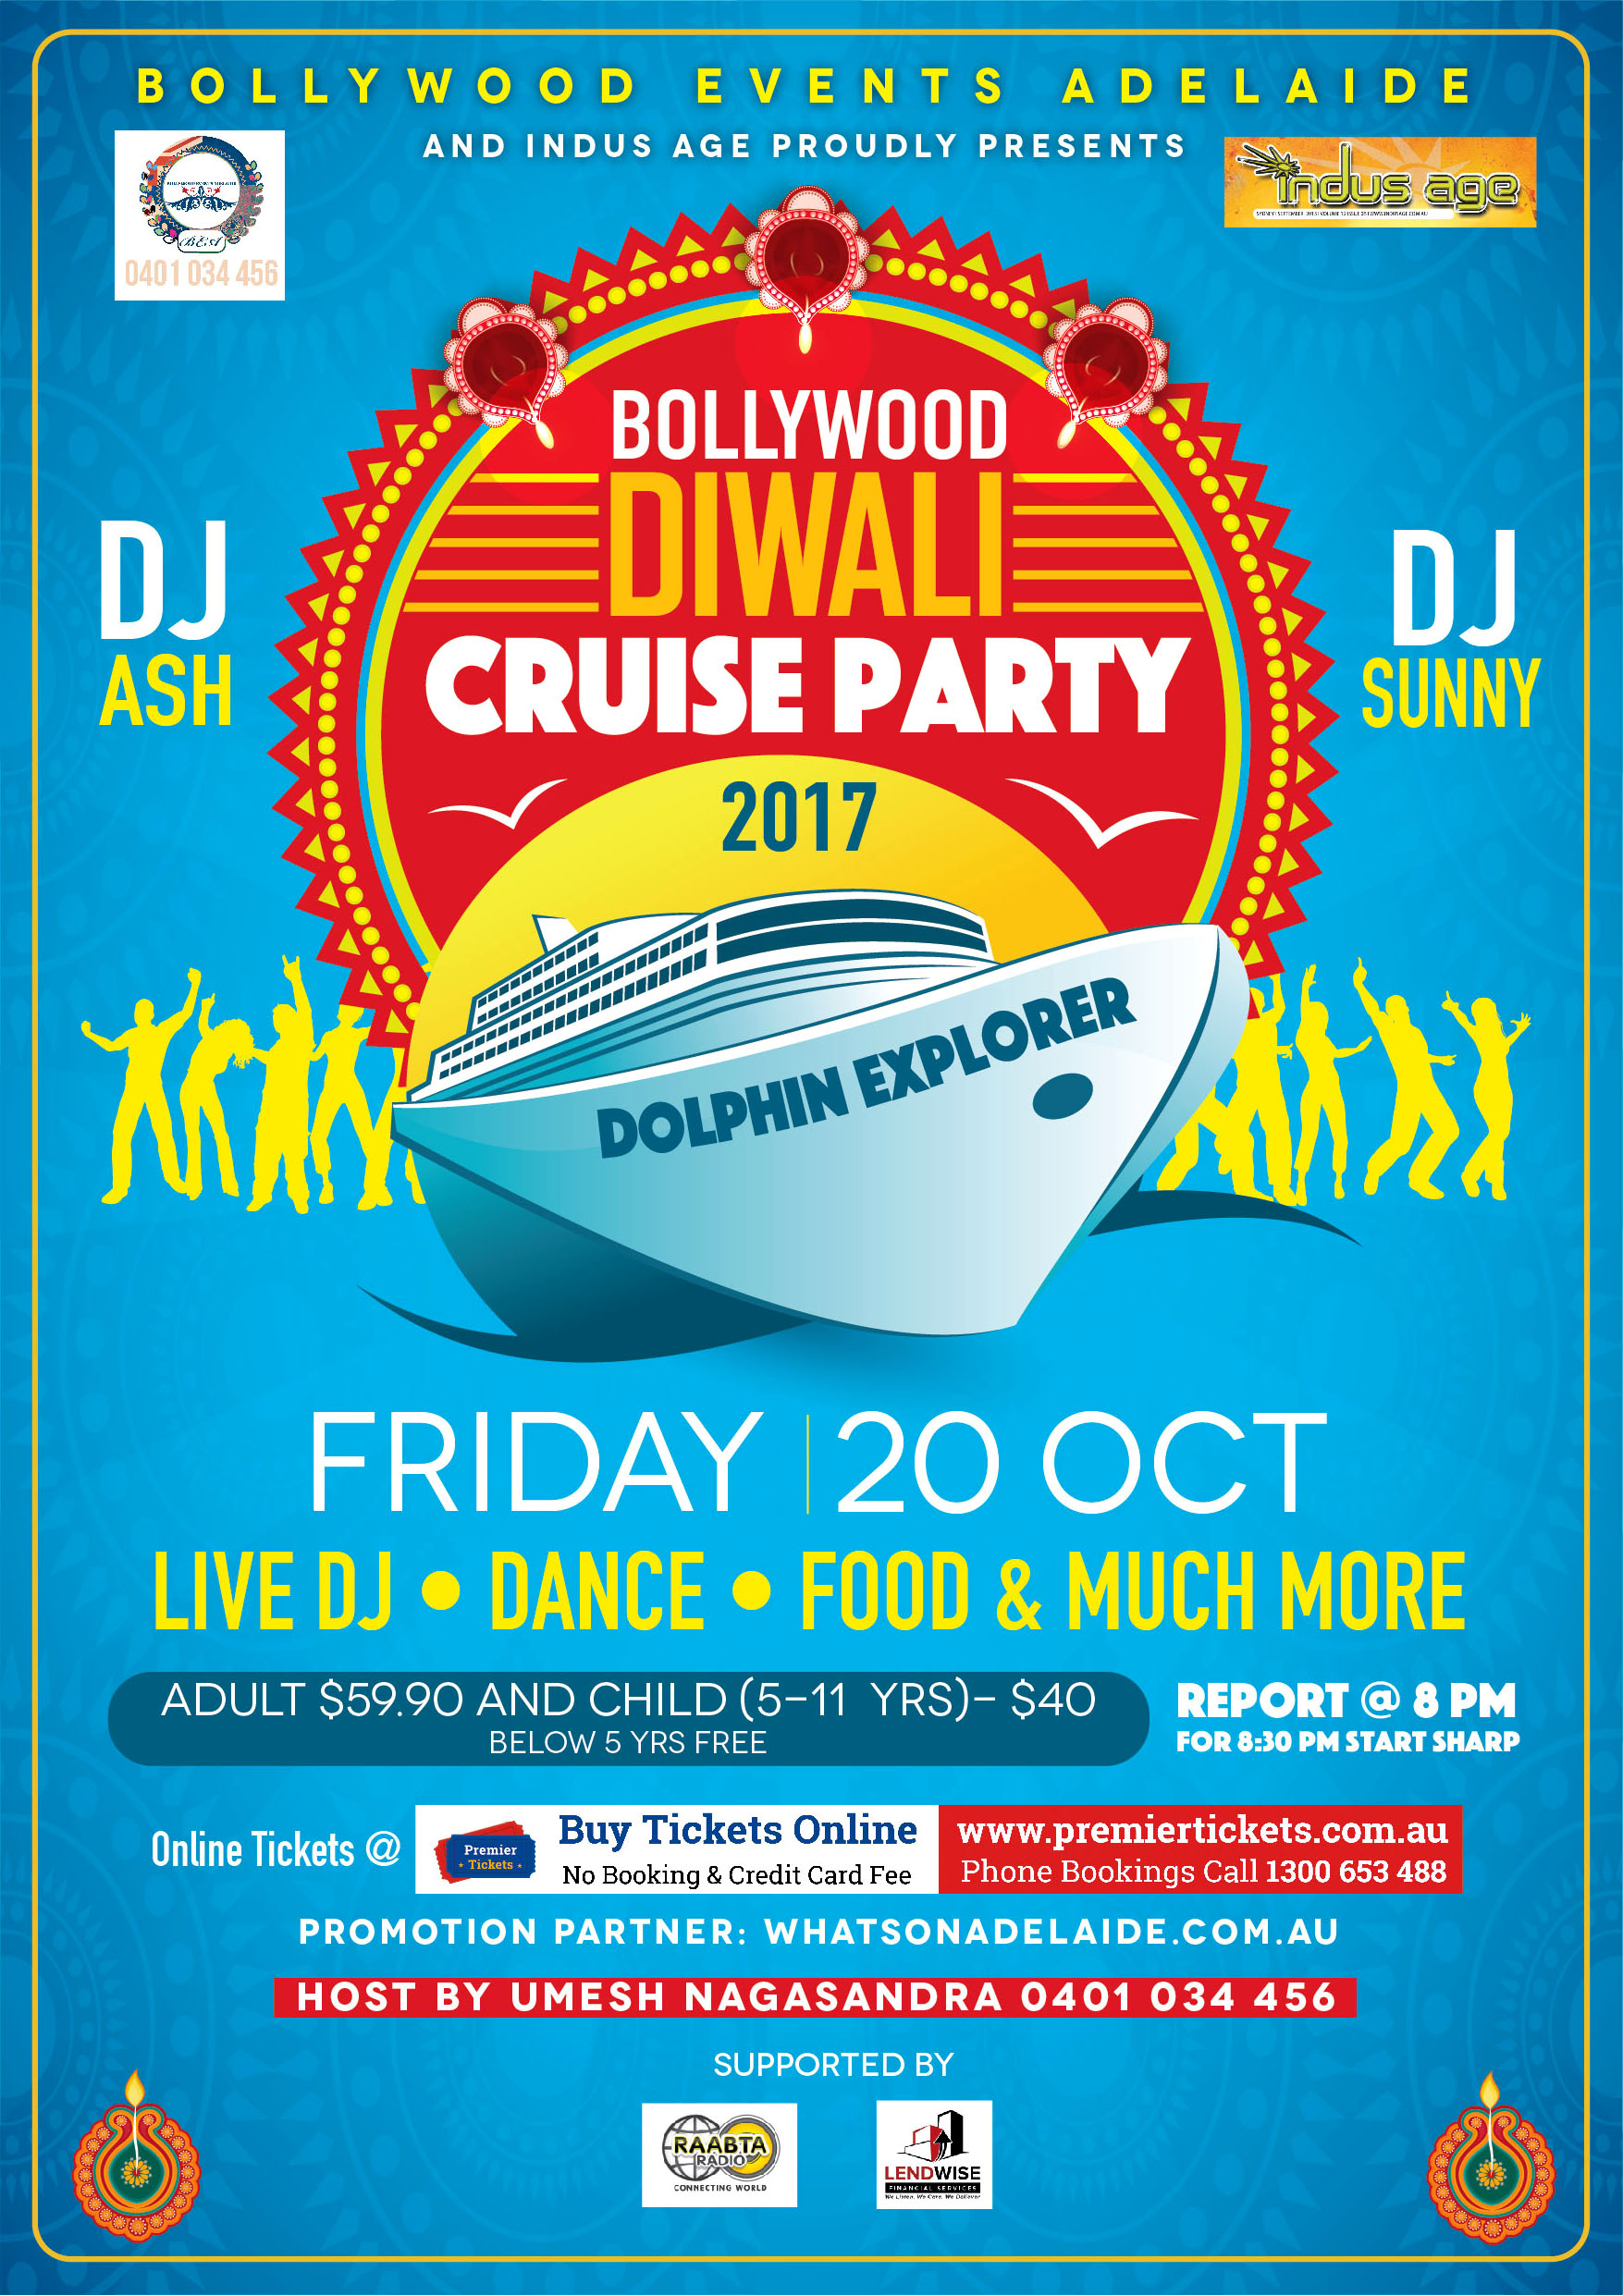 Bollywood Diwali Cruise Party 2017